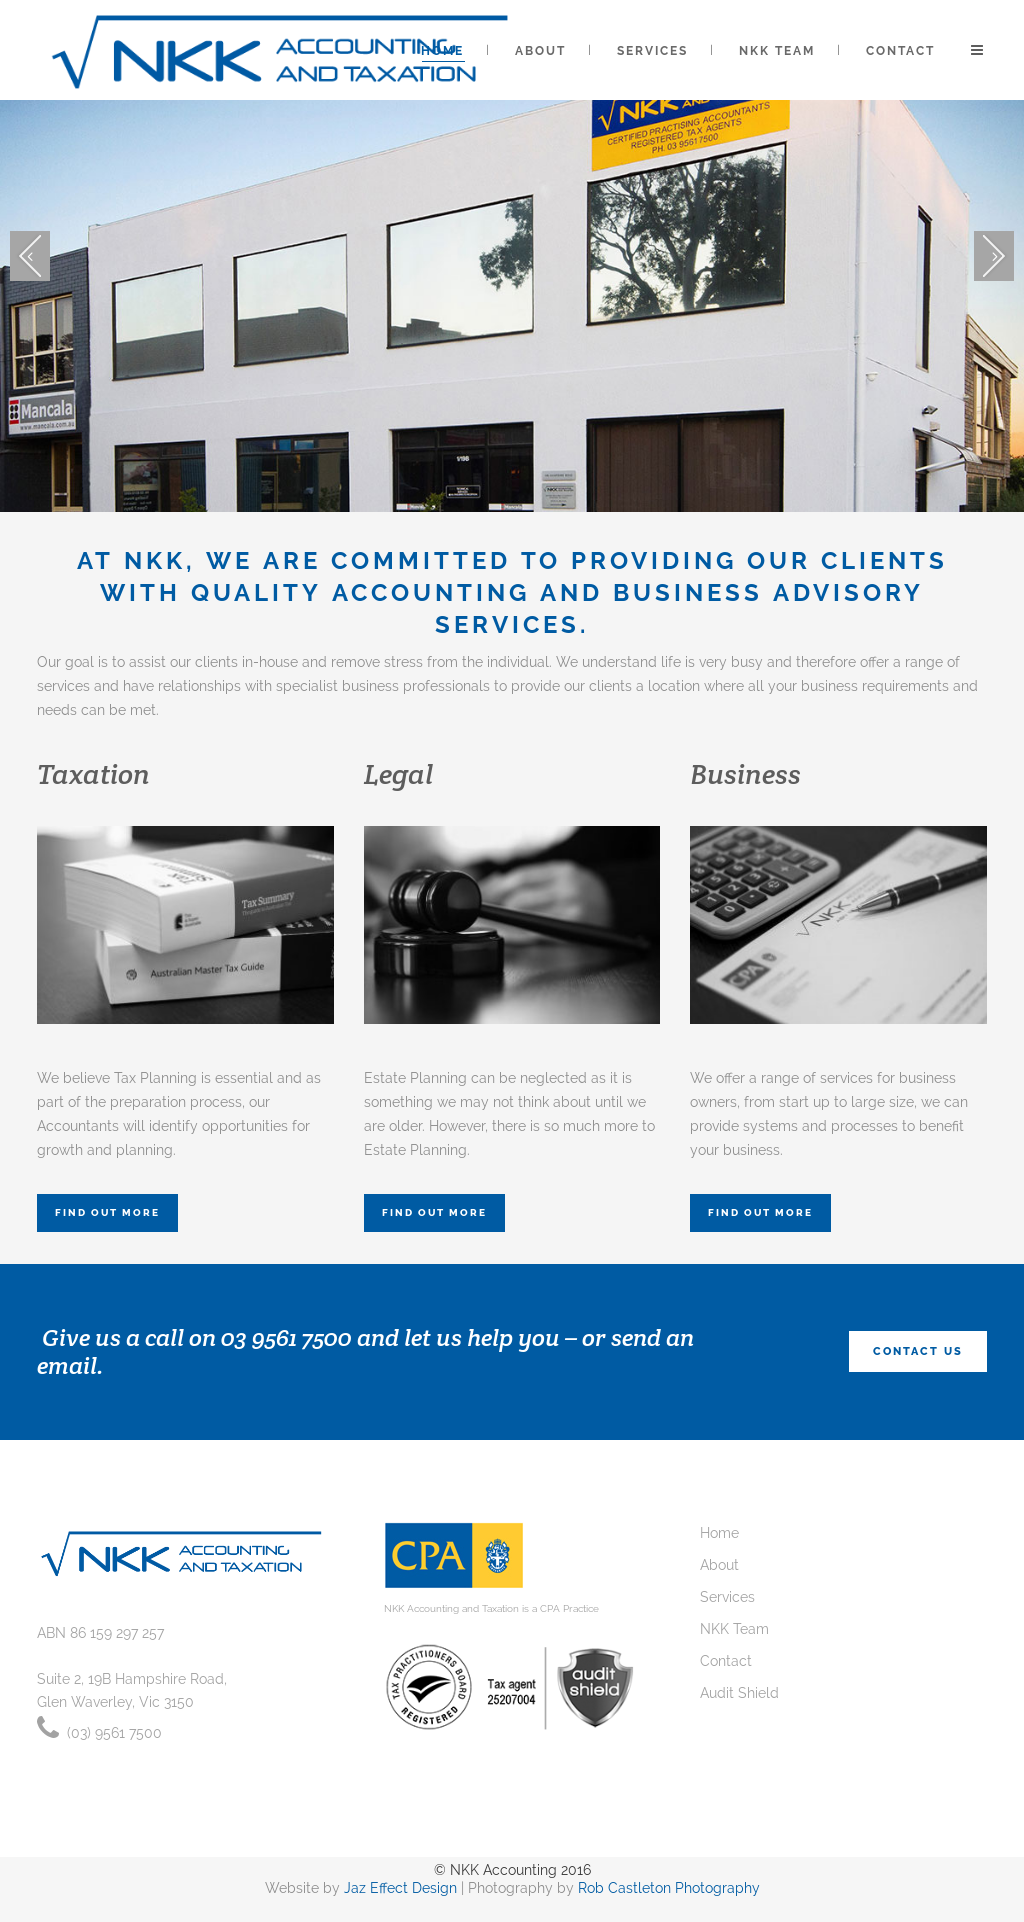 Nkk Accounting And Taxation website history